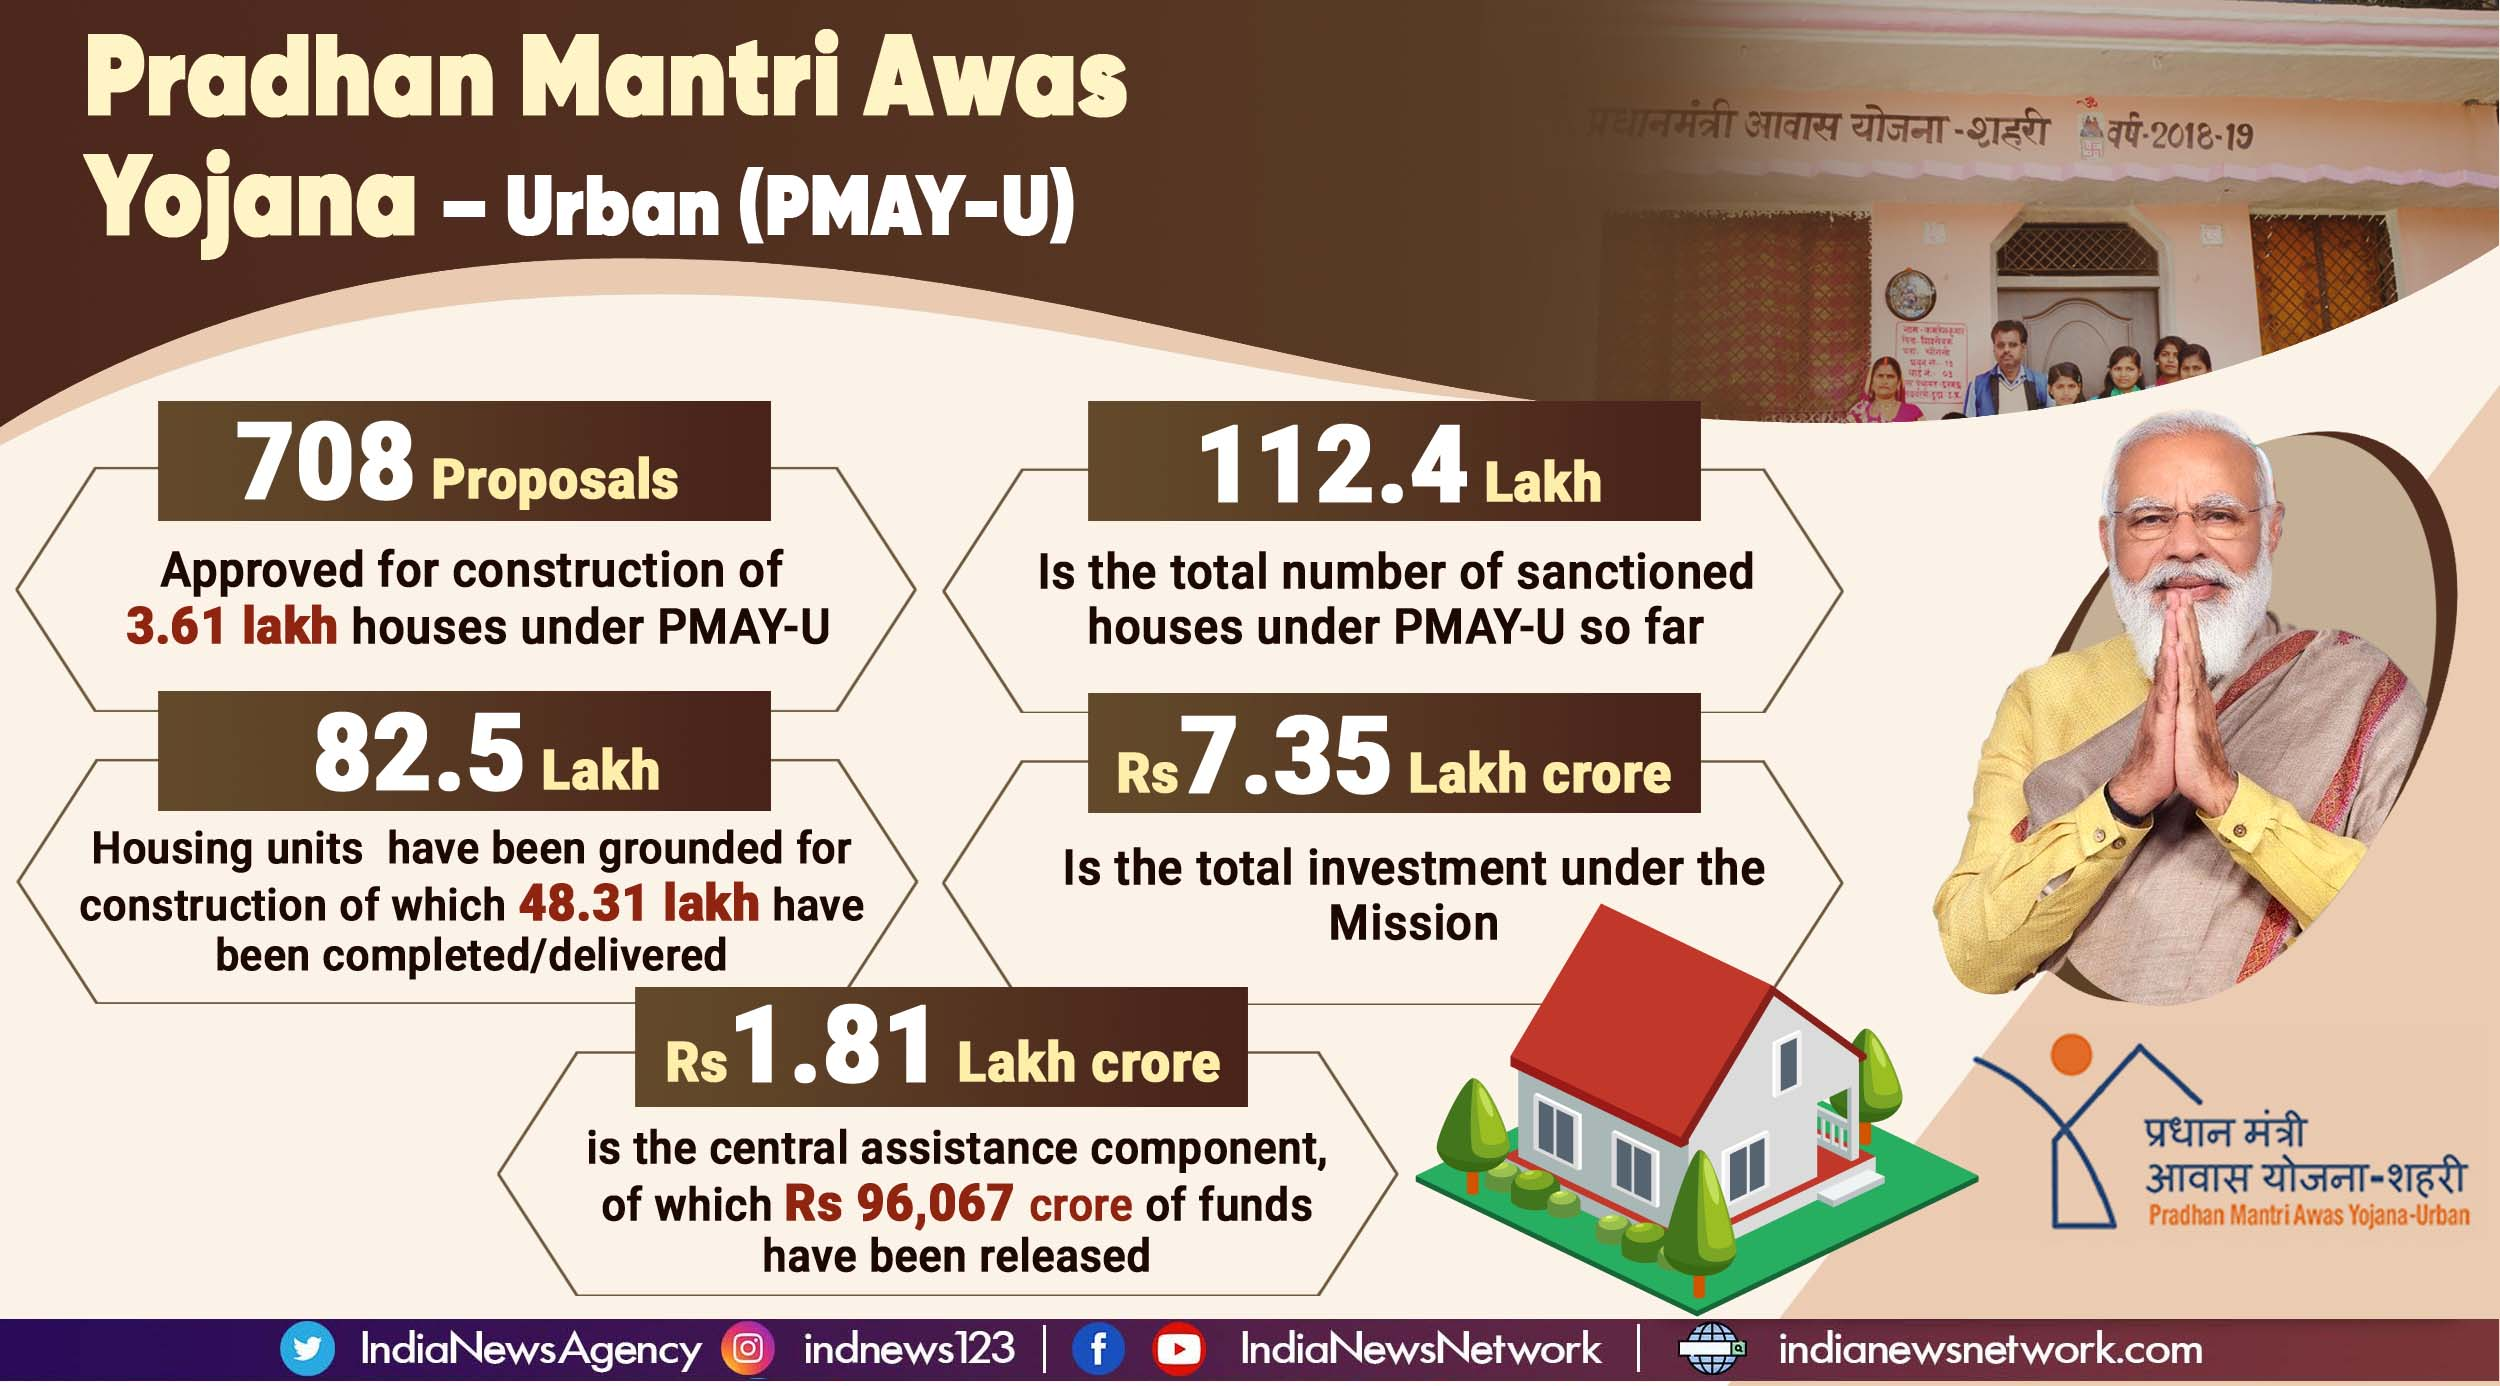 PMAY-Urban: Proposals for construction of nearly 3.61 lakh houses approved